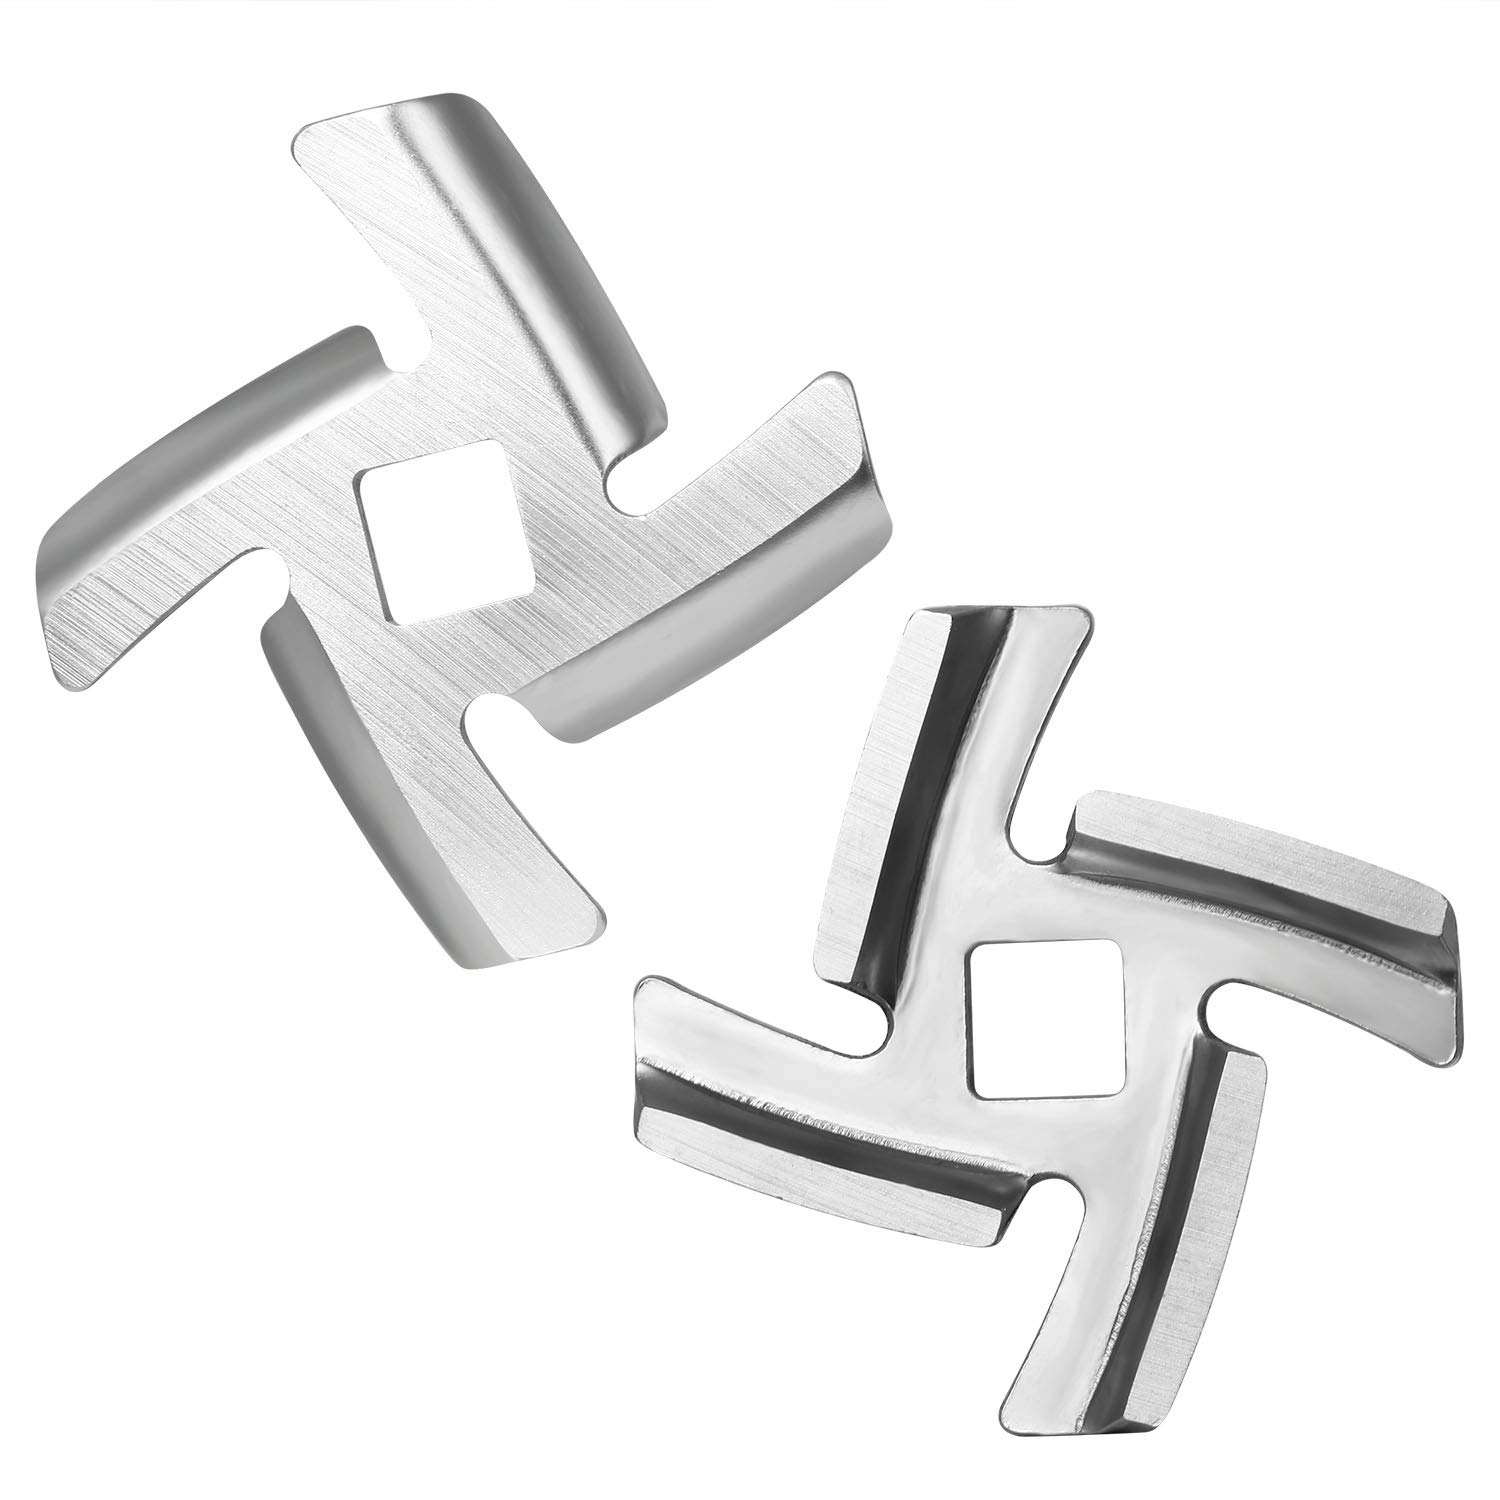 iVict 2-Pack Food Meat Grinder Blade Stainless